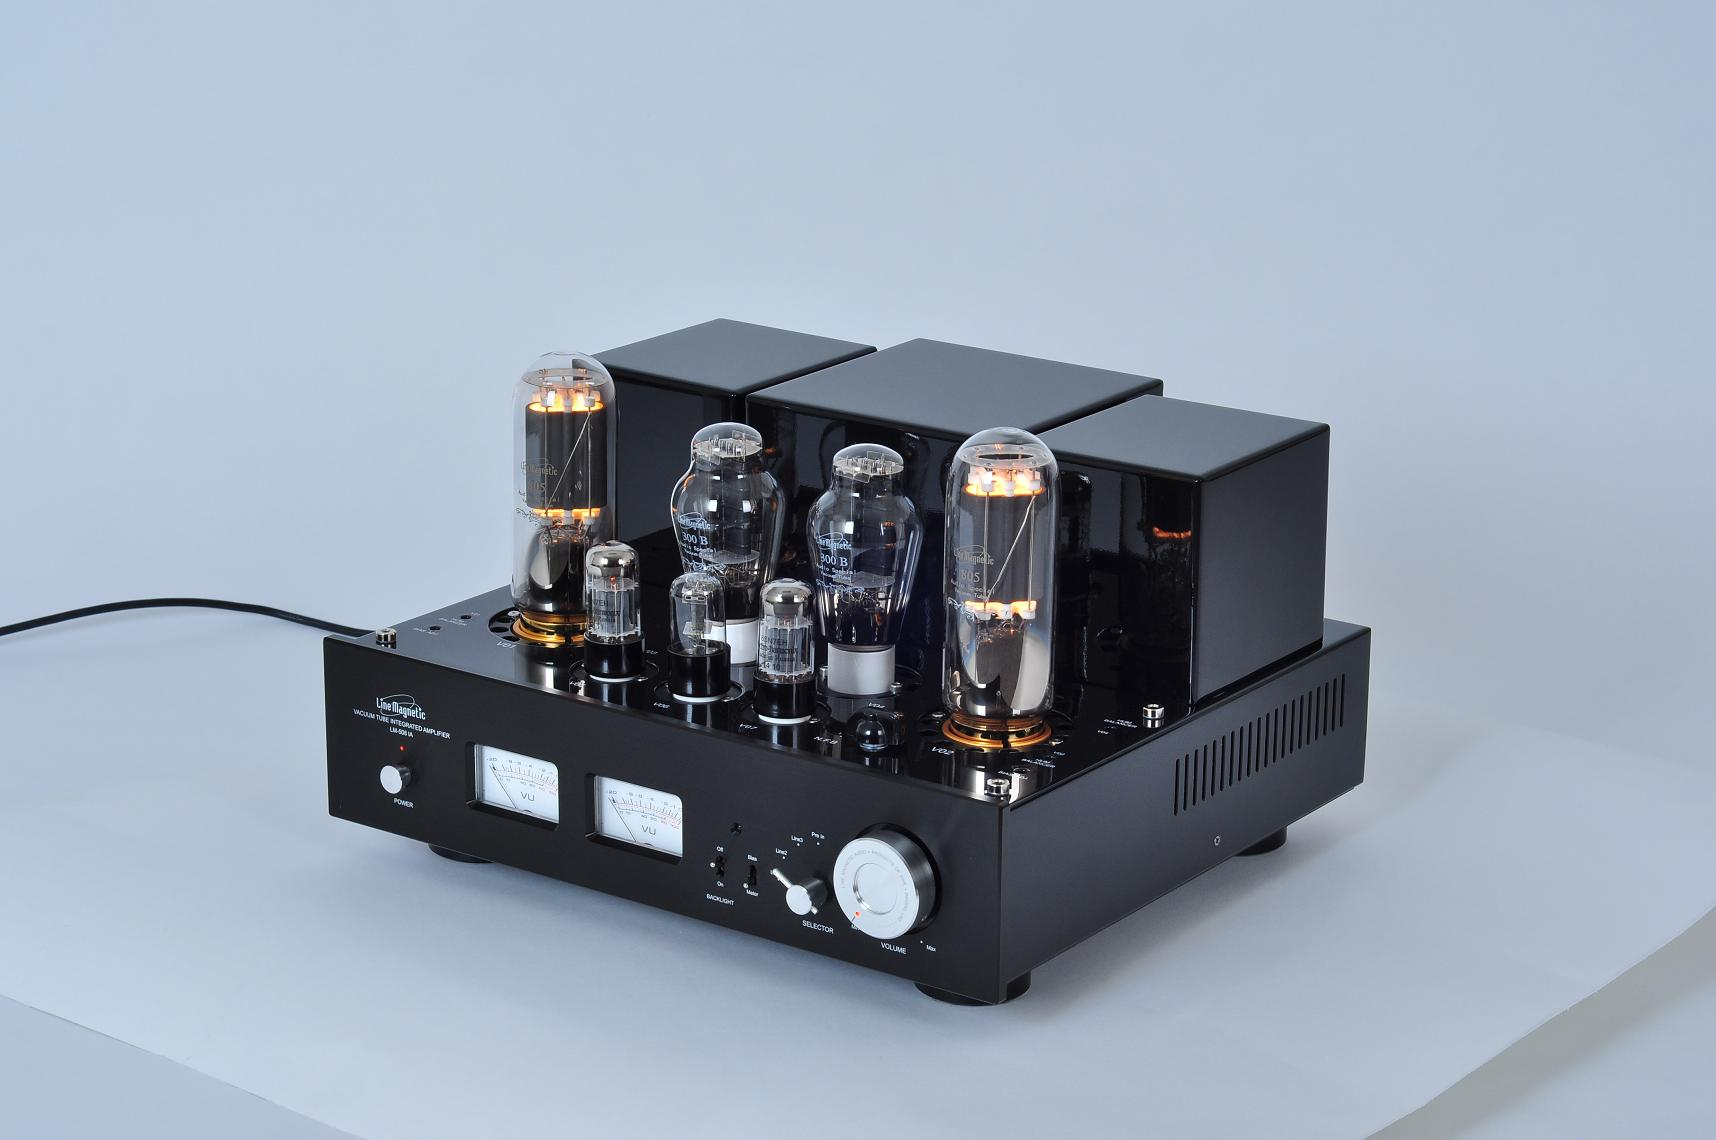 Line Magnetic Magnetic LM-508IA Combined Biliary Machine Power Amplifier 805 Electron Tube Single End Class A